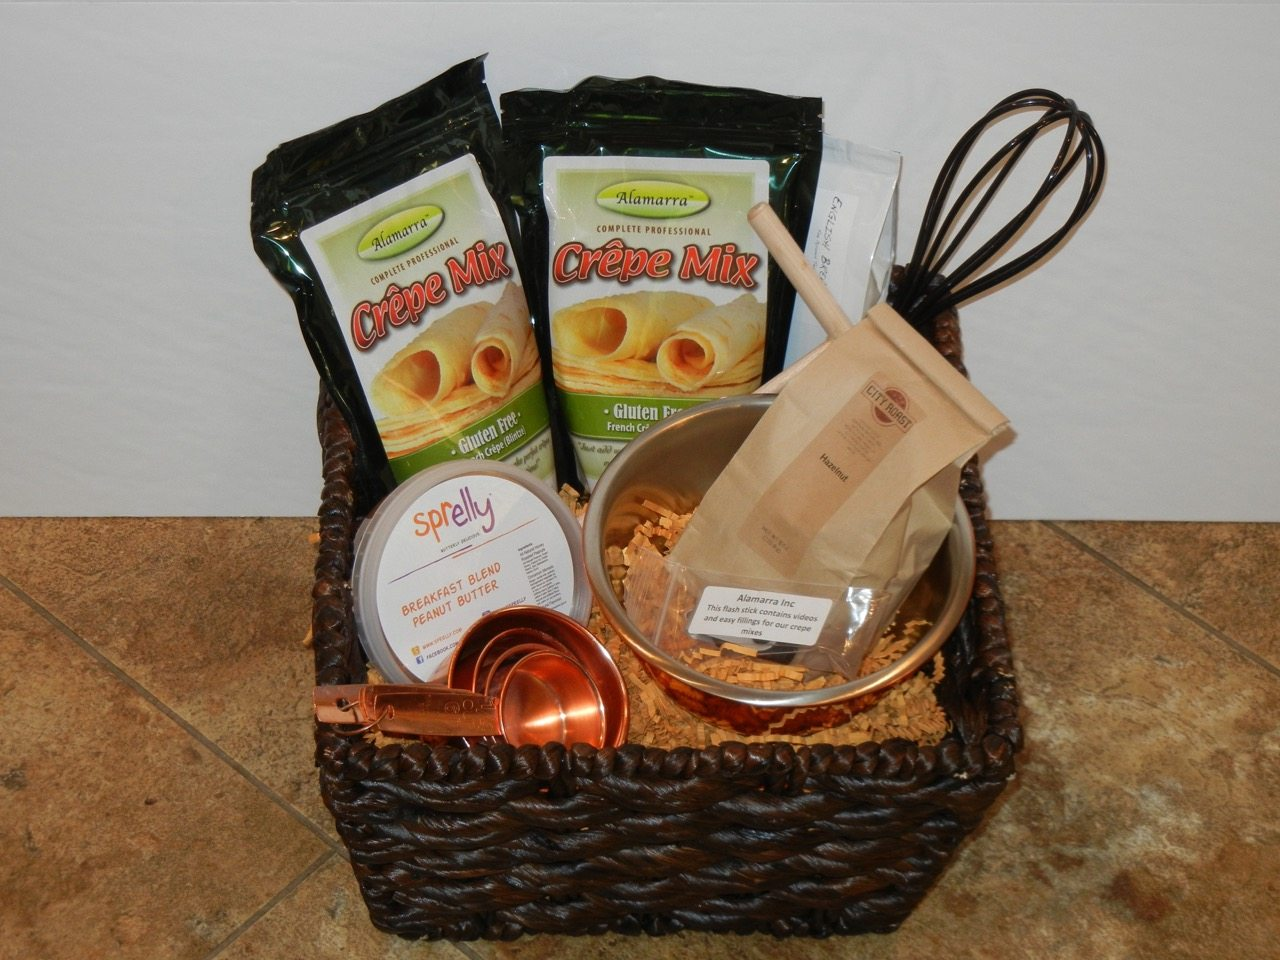 Alamarra crepe pancake waffle mix gluten free cleveland oh alamarra has two gift baskets just perfect for them the gluten free crepe mix basket is on the left and the flour based crepe mix basket is on the right negle Gallery